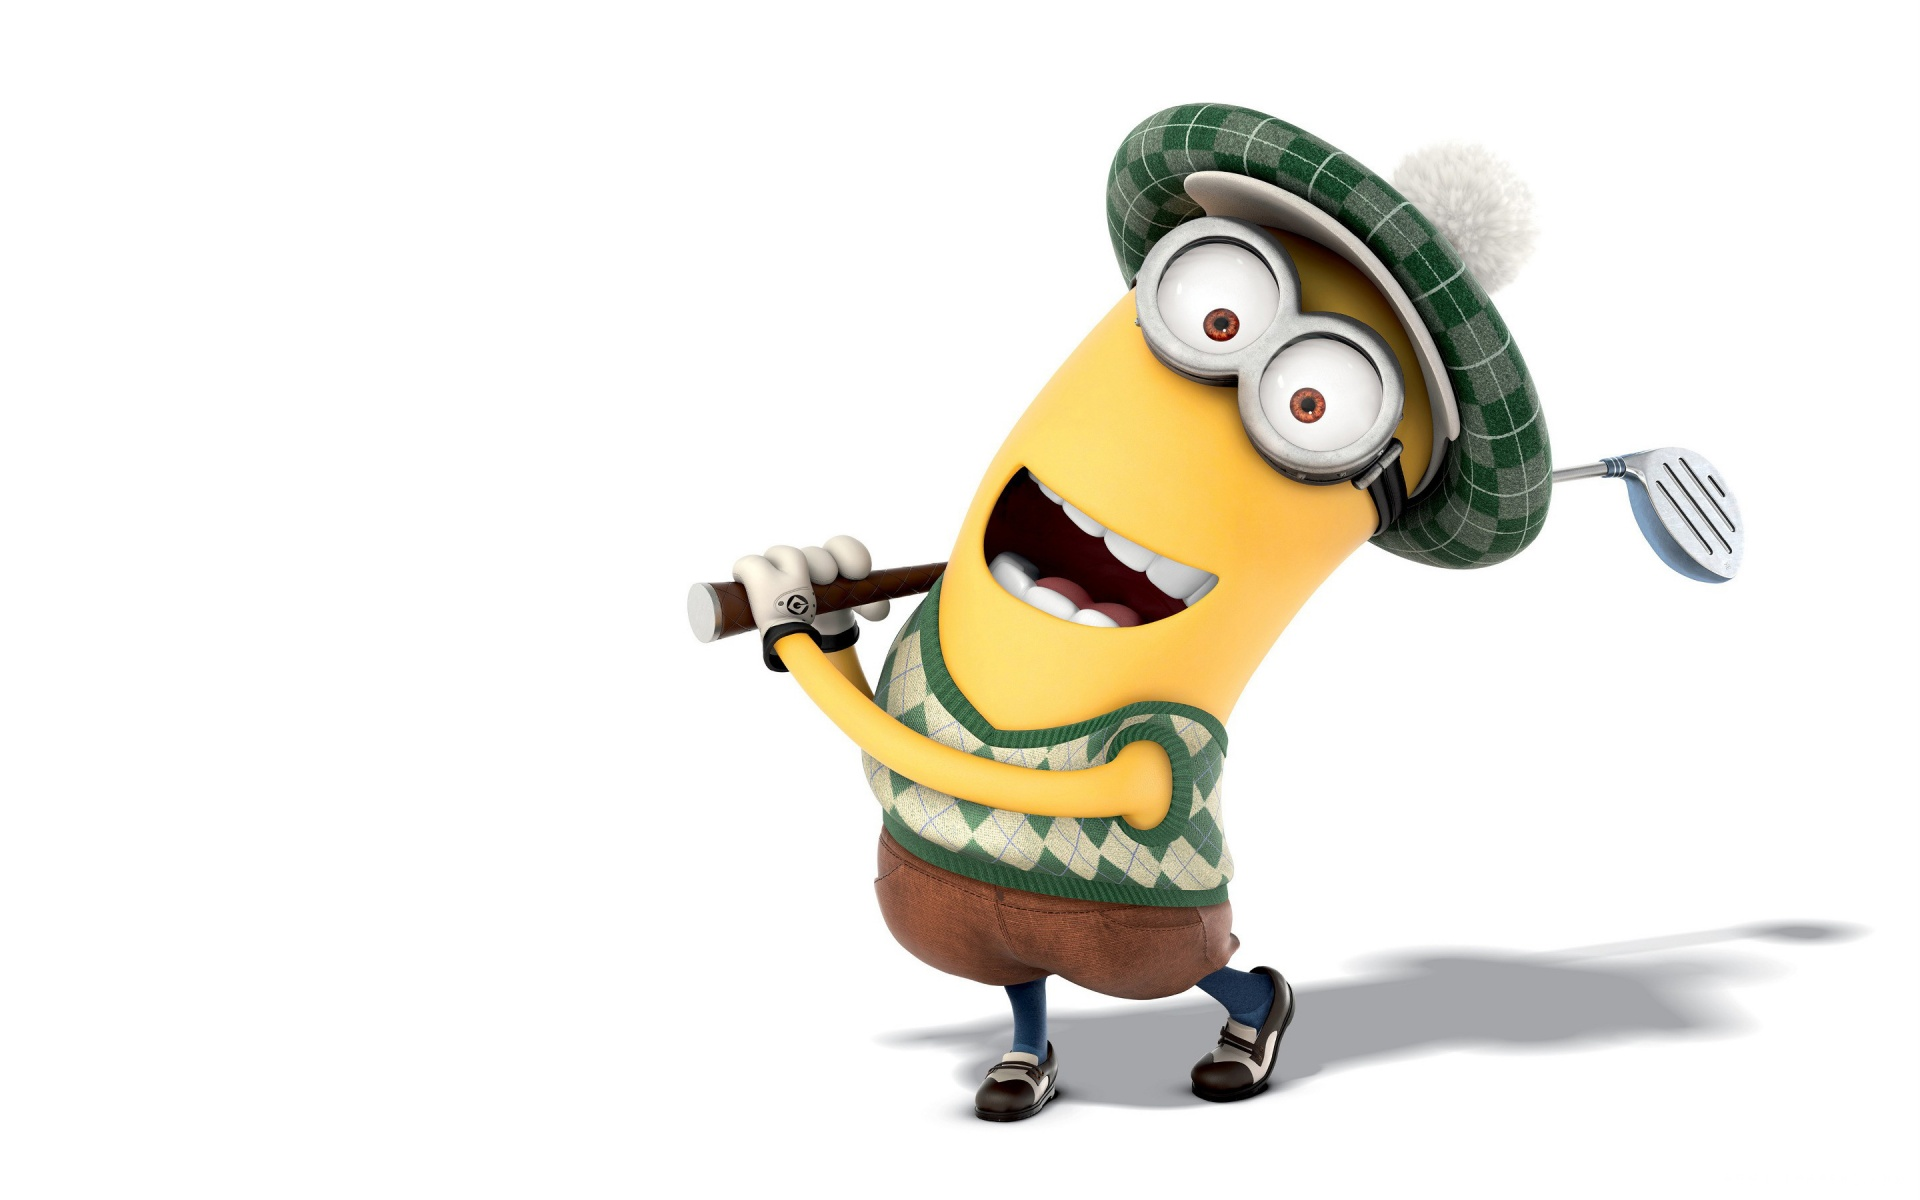 Minion Kevin In Despicable Me 2 1920x1200